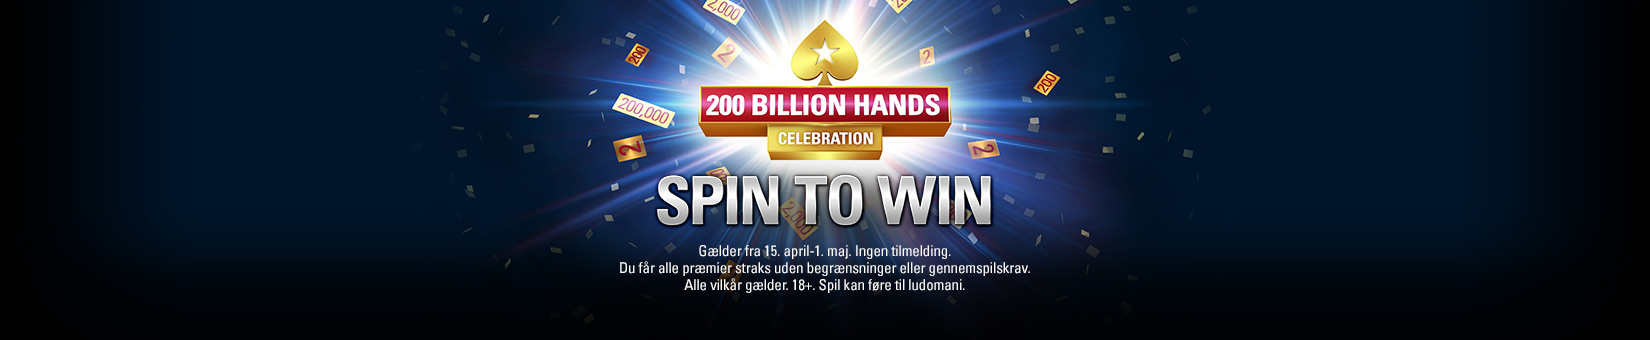 200 Billion Hands Celebration: Spin To Win